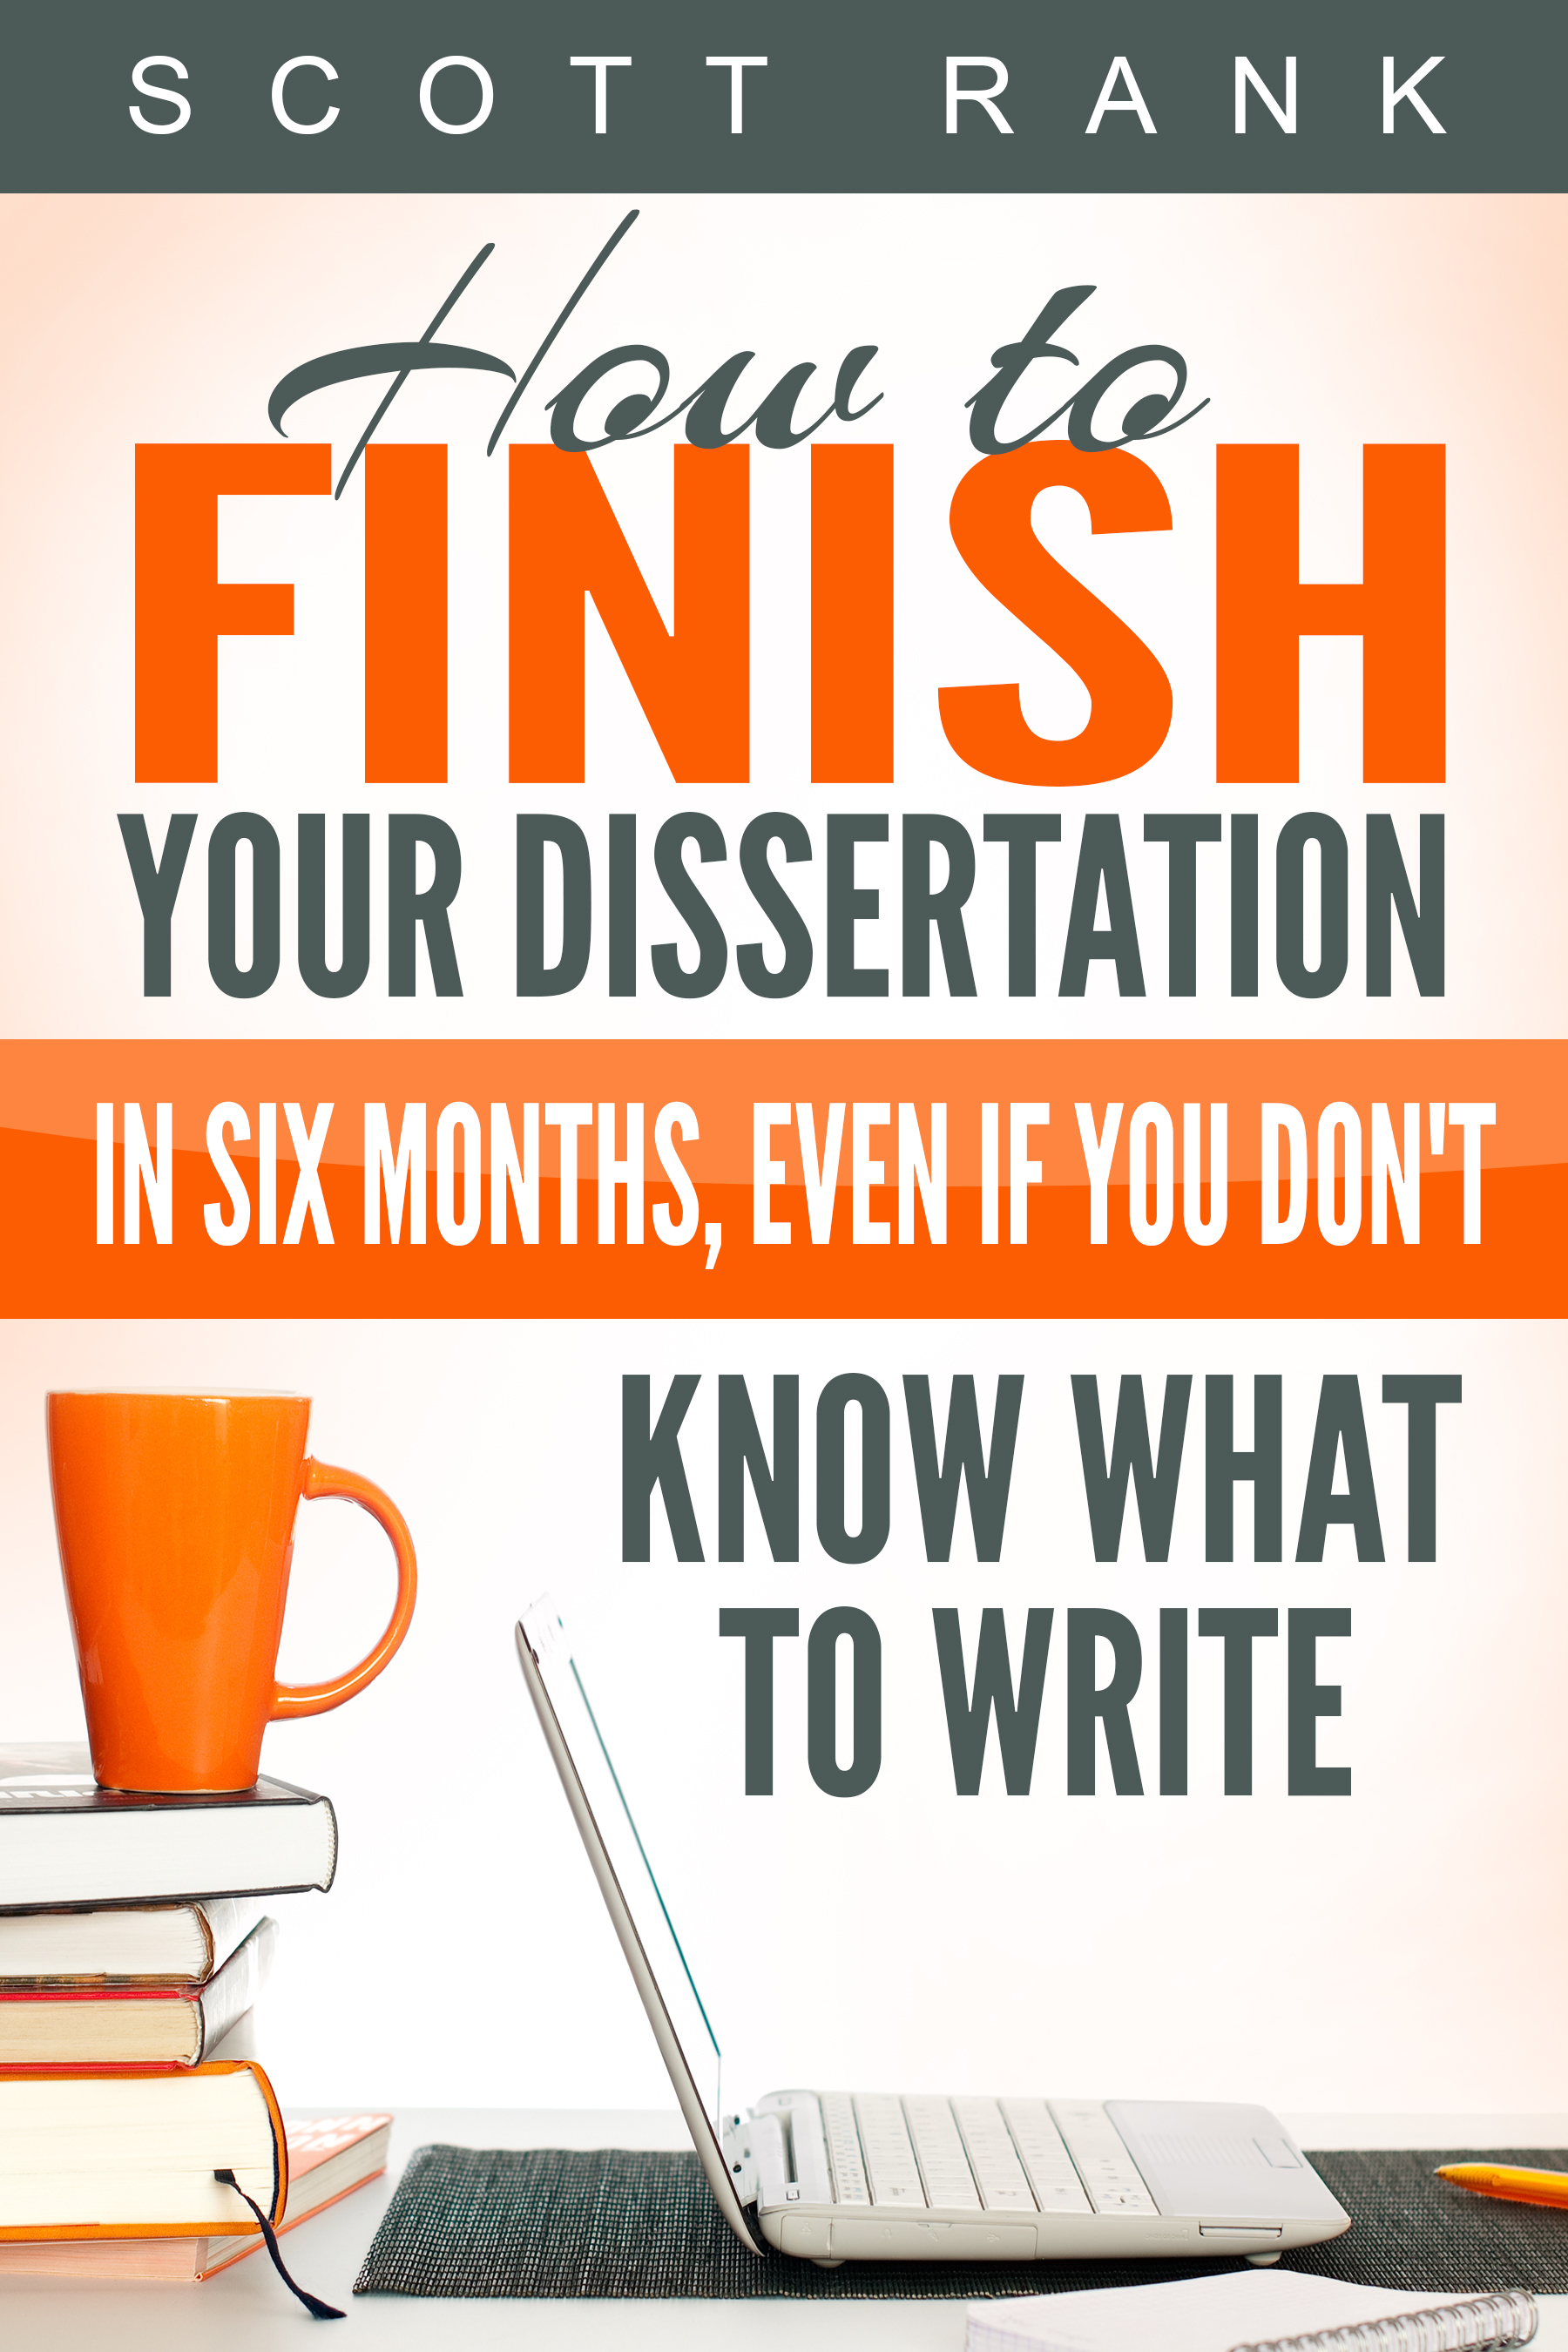 How to write your dissertation 3 months